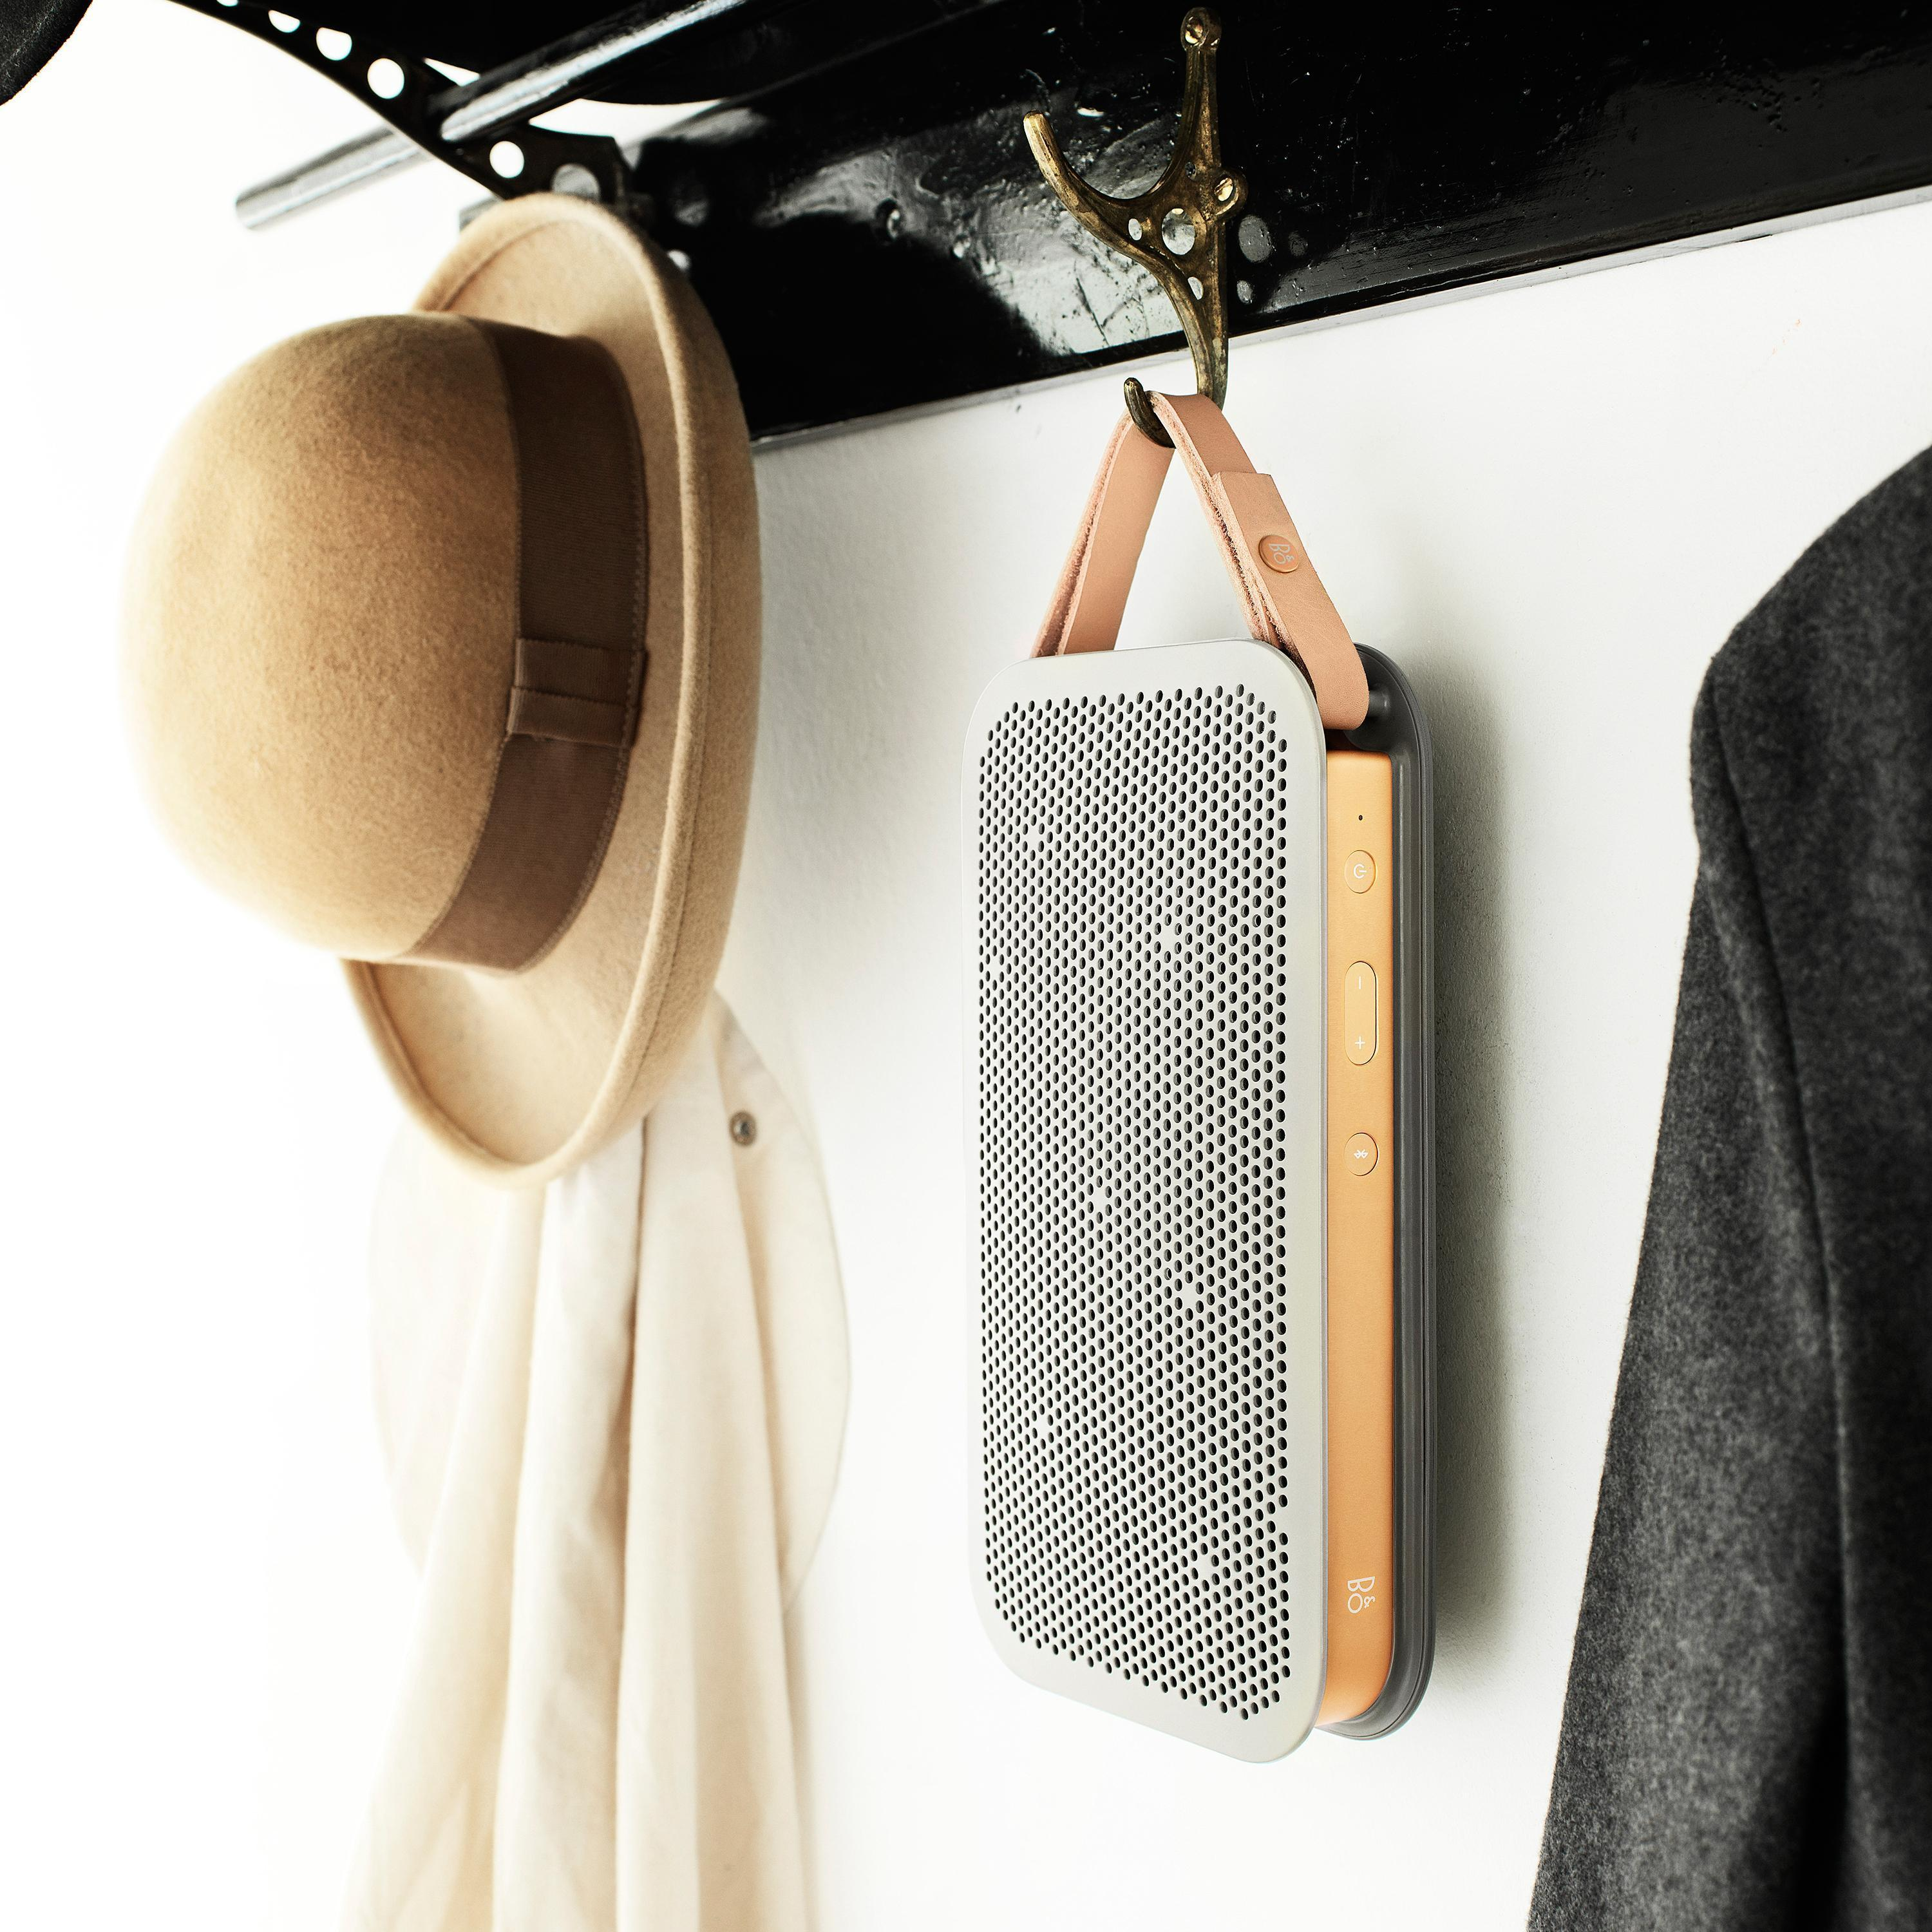 $299 BANG & OLUFSEN BeoPlay A2 Portable Bluetooth Speaker